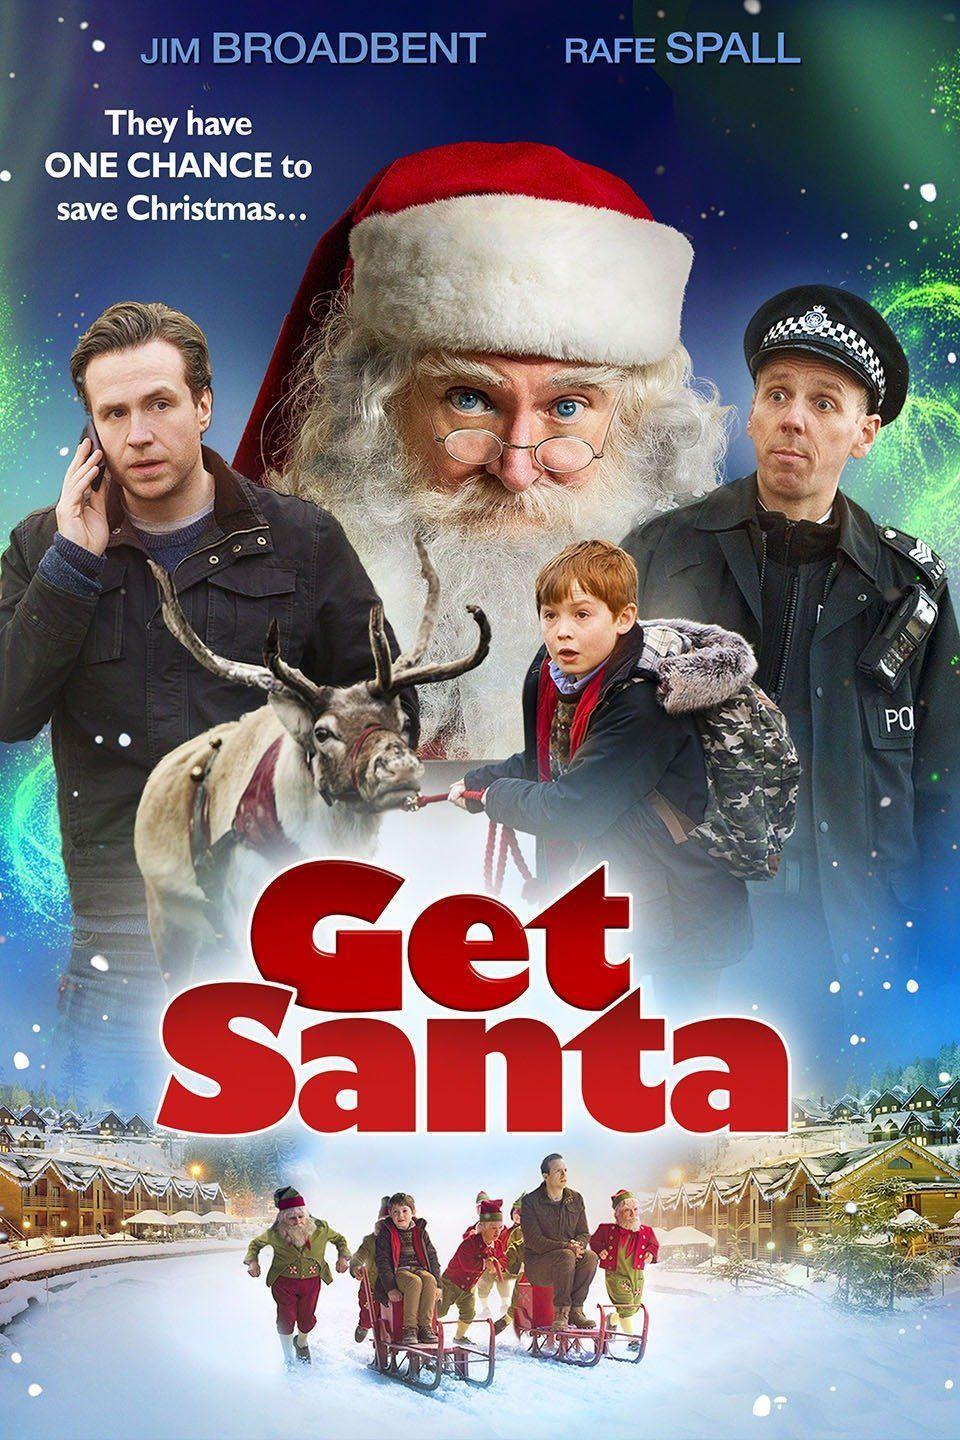 """<p>After crashing his sleigh, Santa Claus asks a father and son to help him gather his reindeer and find his way home. </p><p><a class=""""link rapid-noclick-resp"""" href=""""https://www.netflix.com/title/80020772"""" rel=""""nofollow noopener"""" target=""""_blank"""" data-ylk=""""slk:STREAM NOW"""">STREAM NOW</a></p>"""